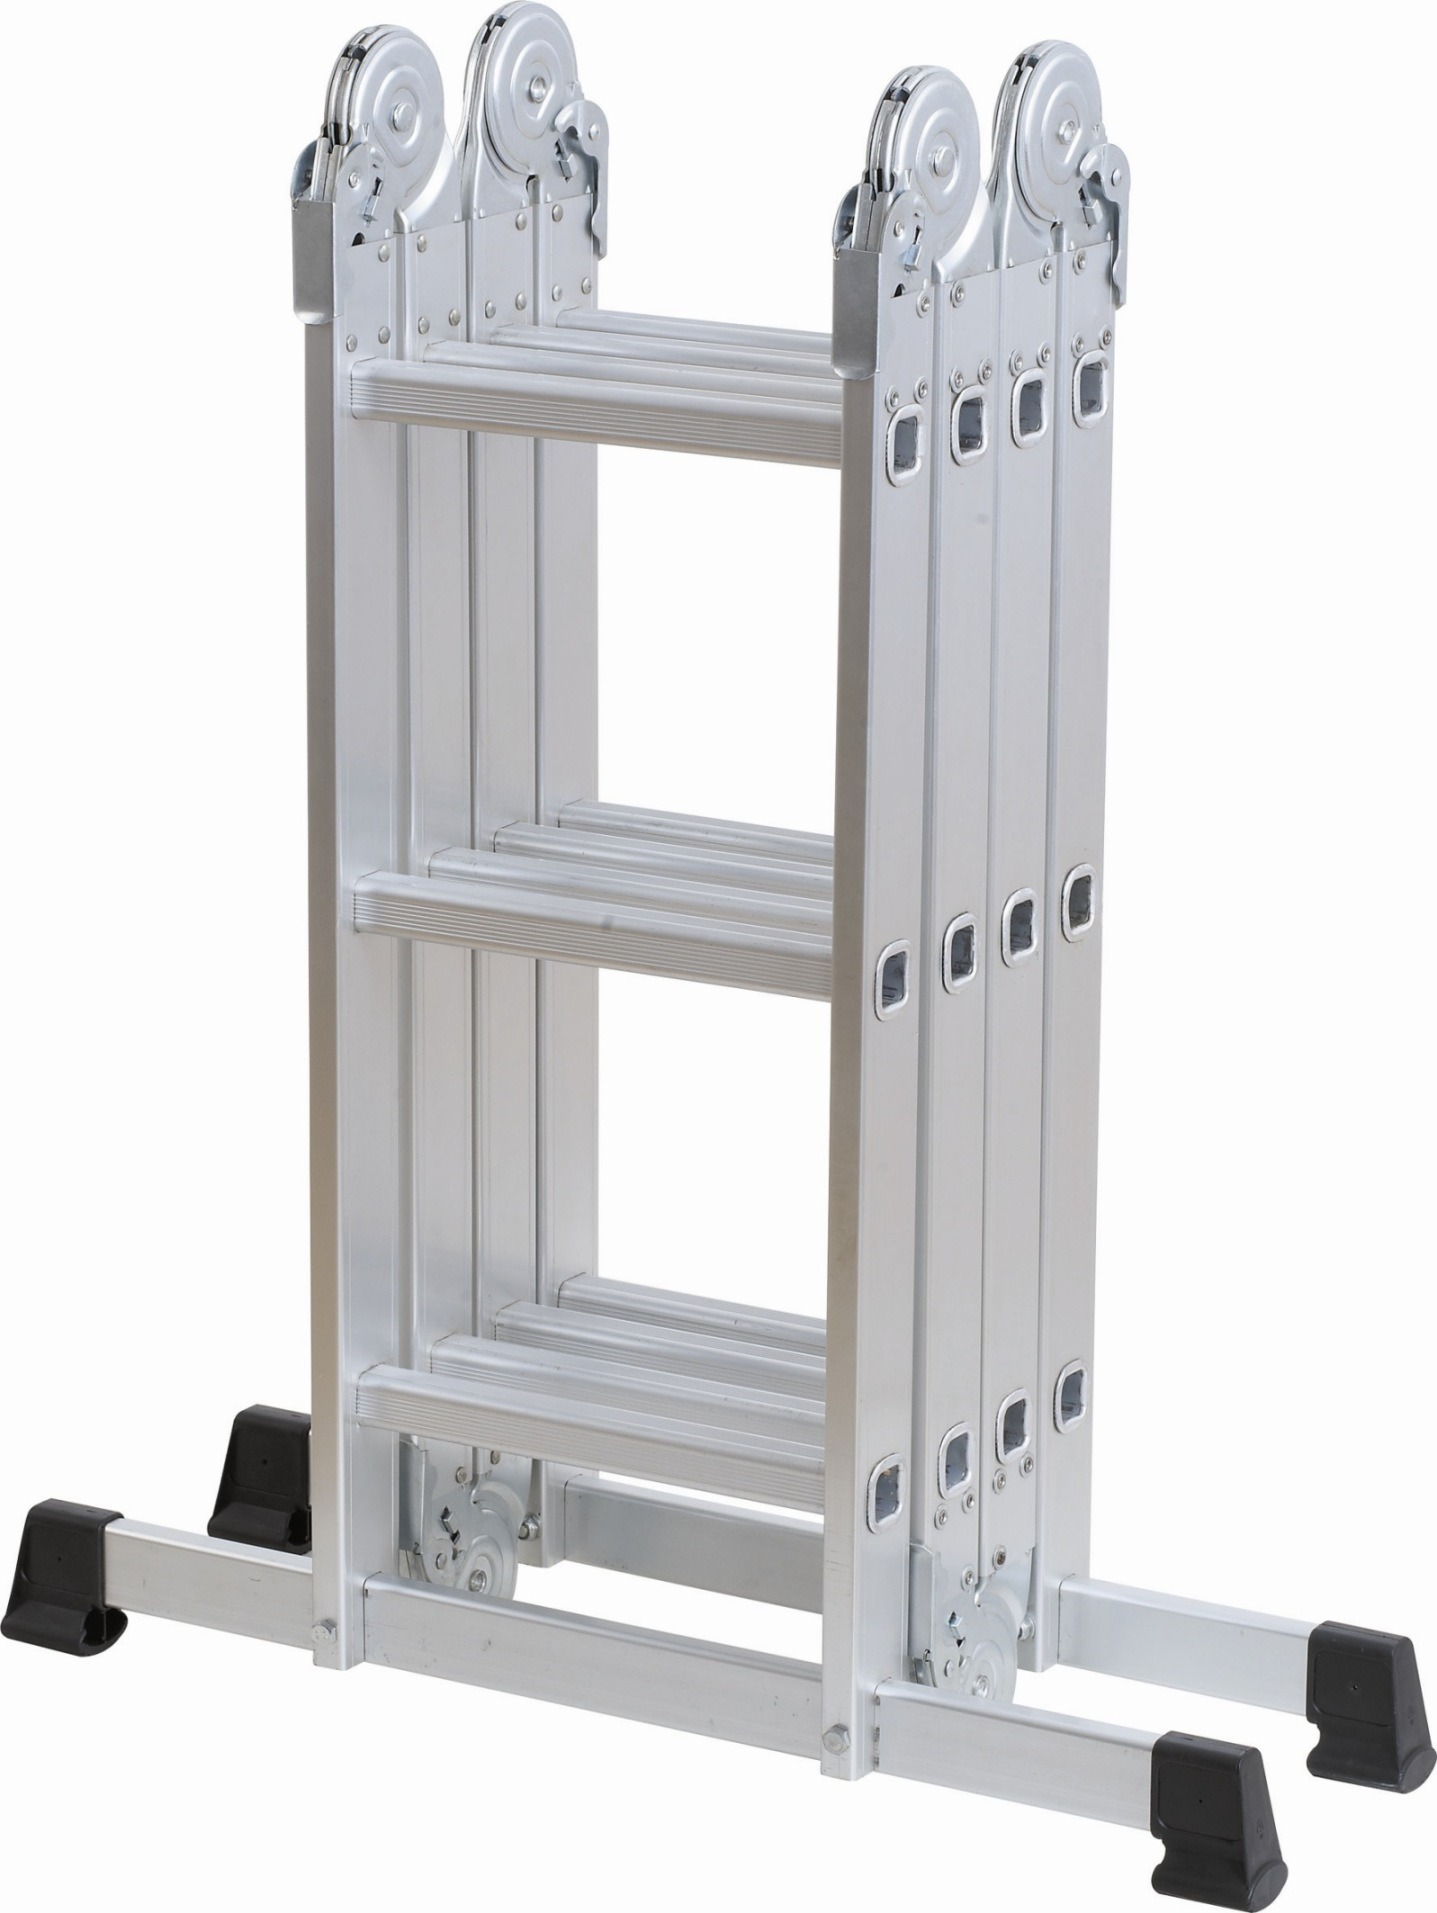 3*4 Multi-Purpose Aluminum Step Ladder (WK3210)